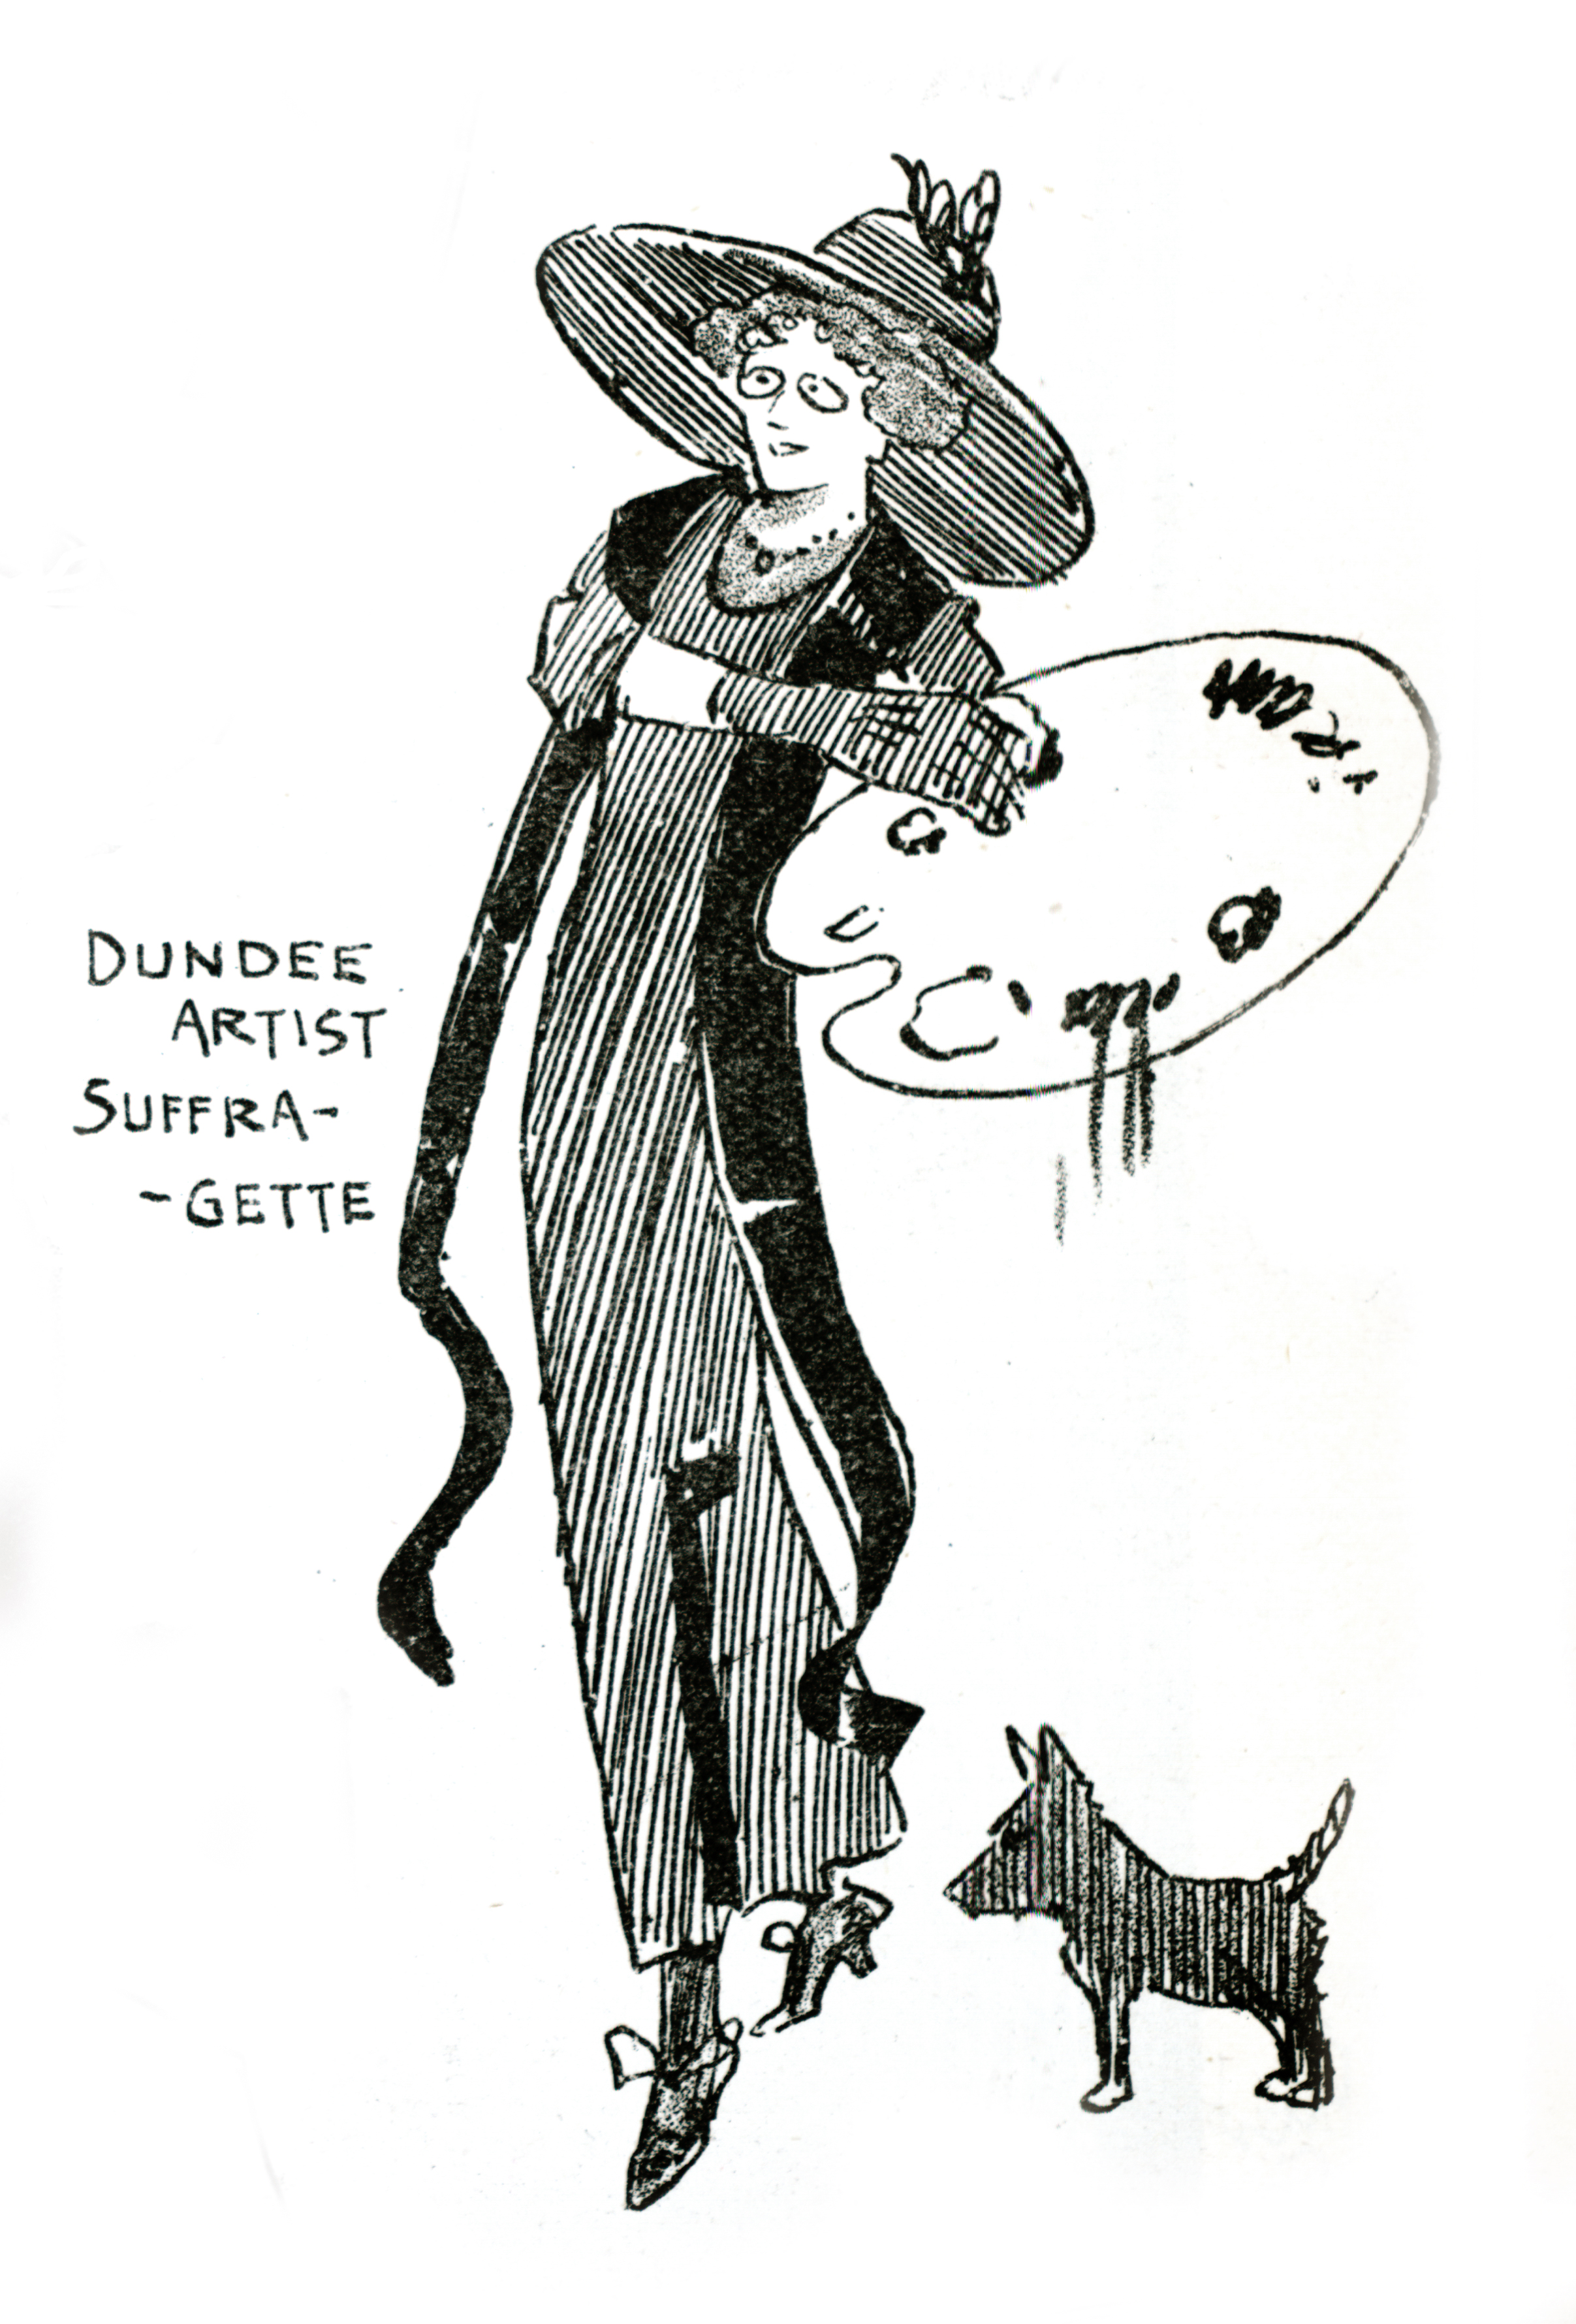 Illustration of Ethel Moorhead from the magazine, The Wizard of the North (no.401, March 1912, p.7). Courtesy of Libraries, Leisure and Culture Dundee